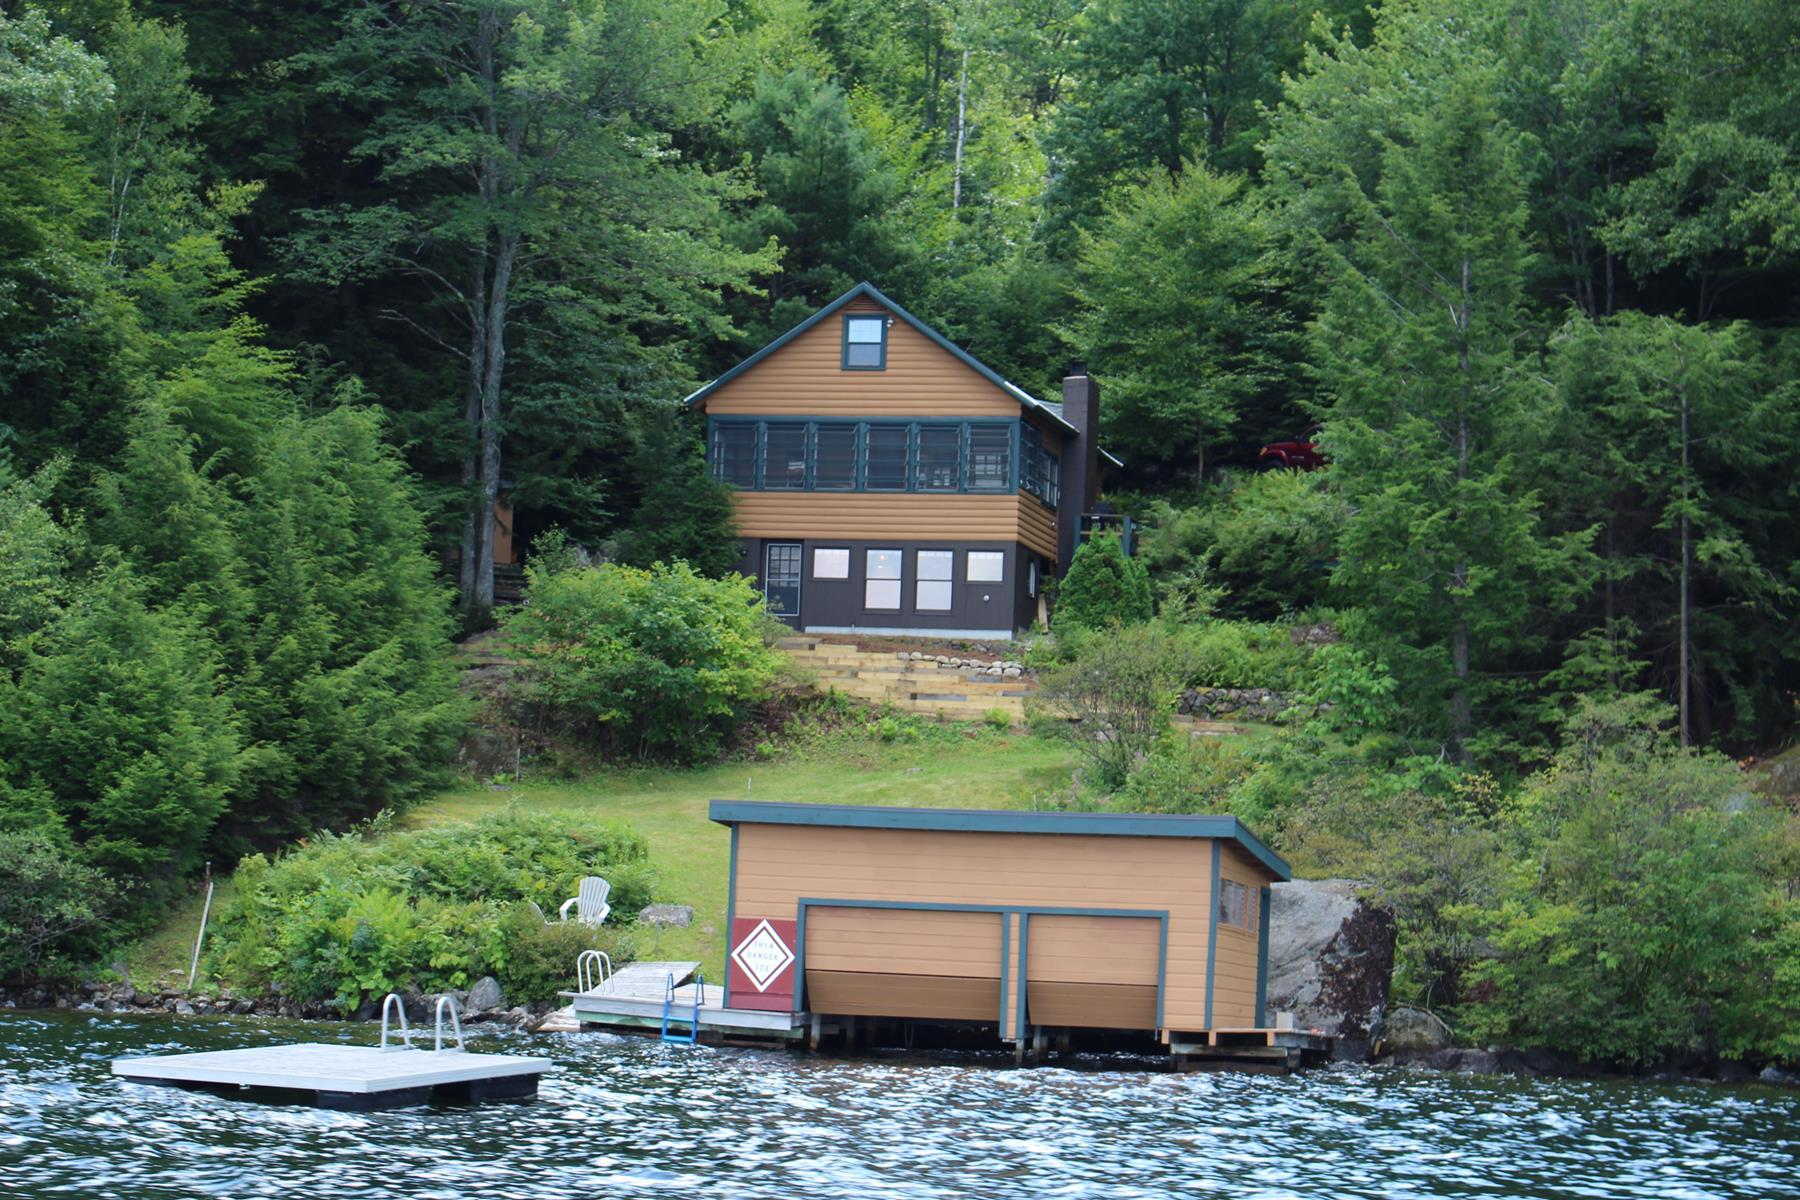 Villa per Vendita alle ore 328 Bay Point Road, Sunapee 328 Bay Point Rd Sunapee, New Hampshire, 03782 Stati Uniti